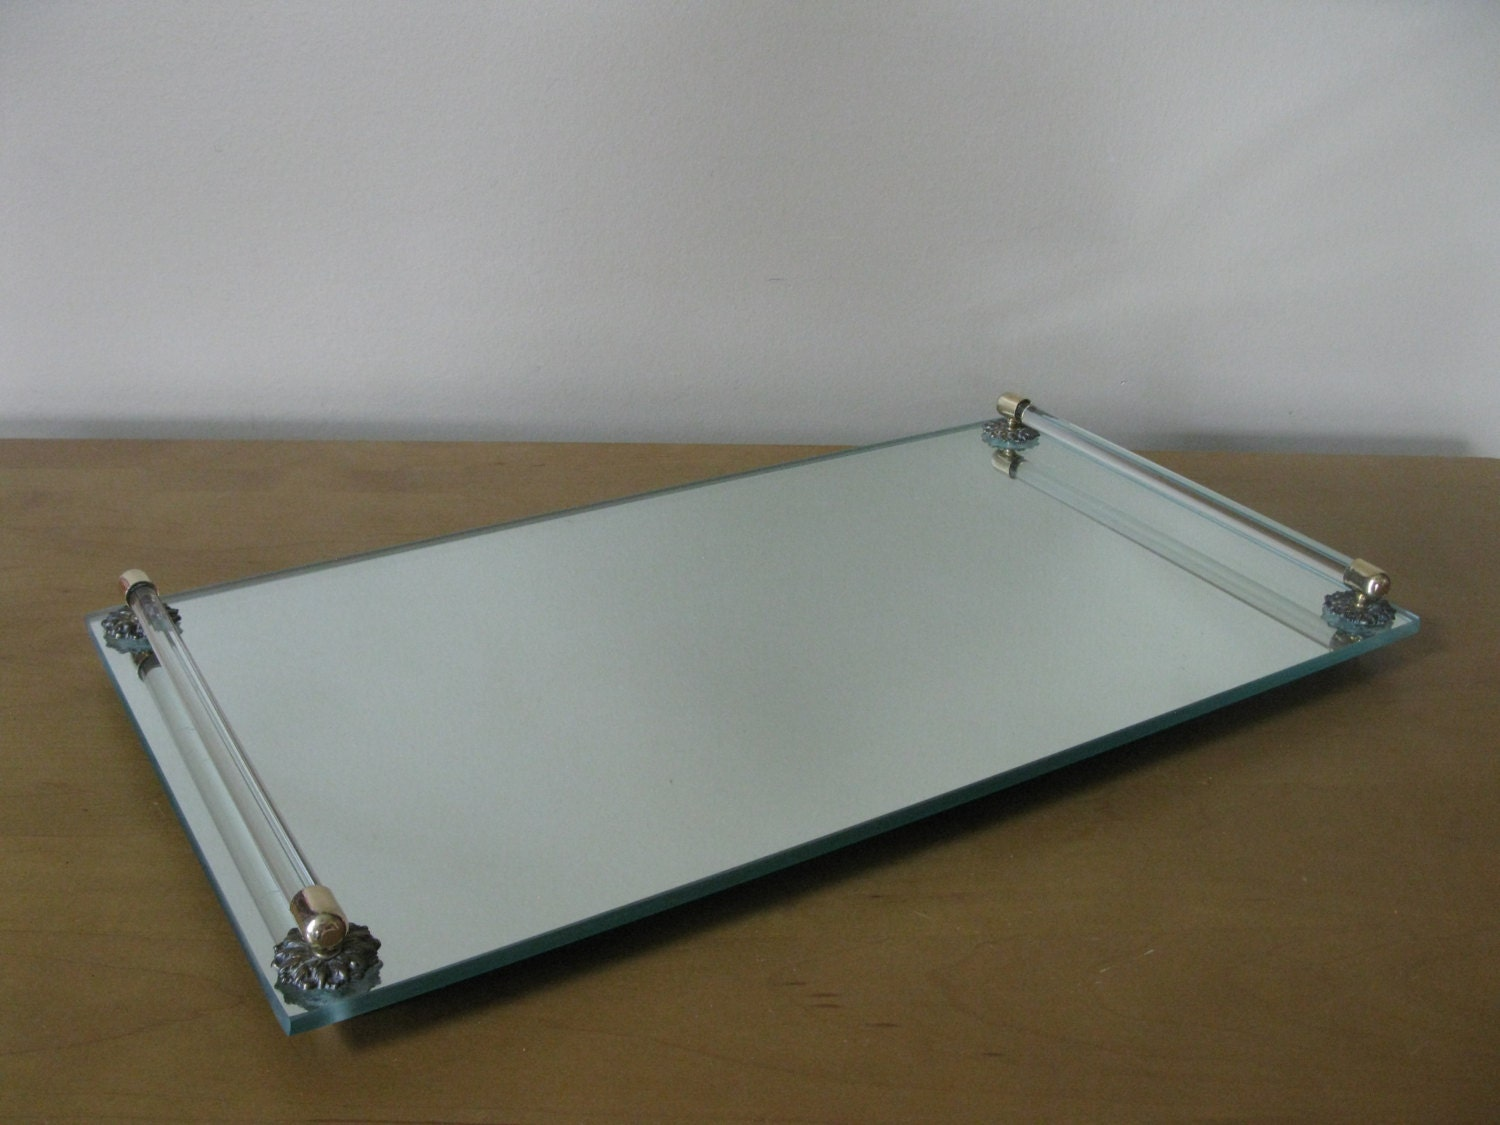 Large mid century mirrored vanity tray 16 x 9 for Mirrored bathroom tray